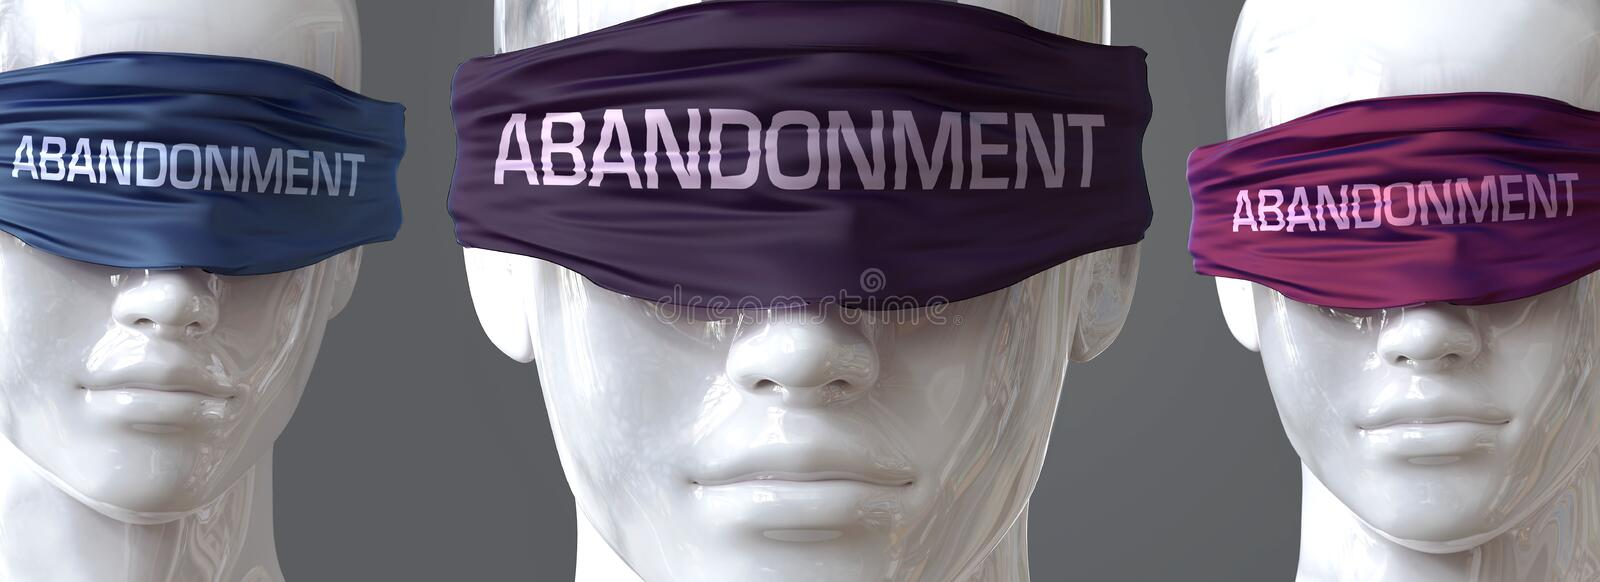 Abandonment can blind our views and limit perspective - pictured as word Abandonment on eyes to symbolize that Abandonment can. Distort perception of the world vector illustration